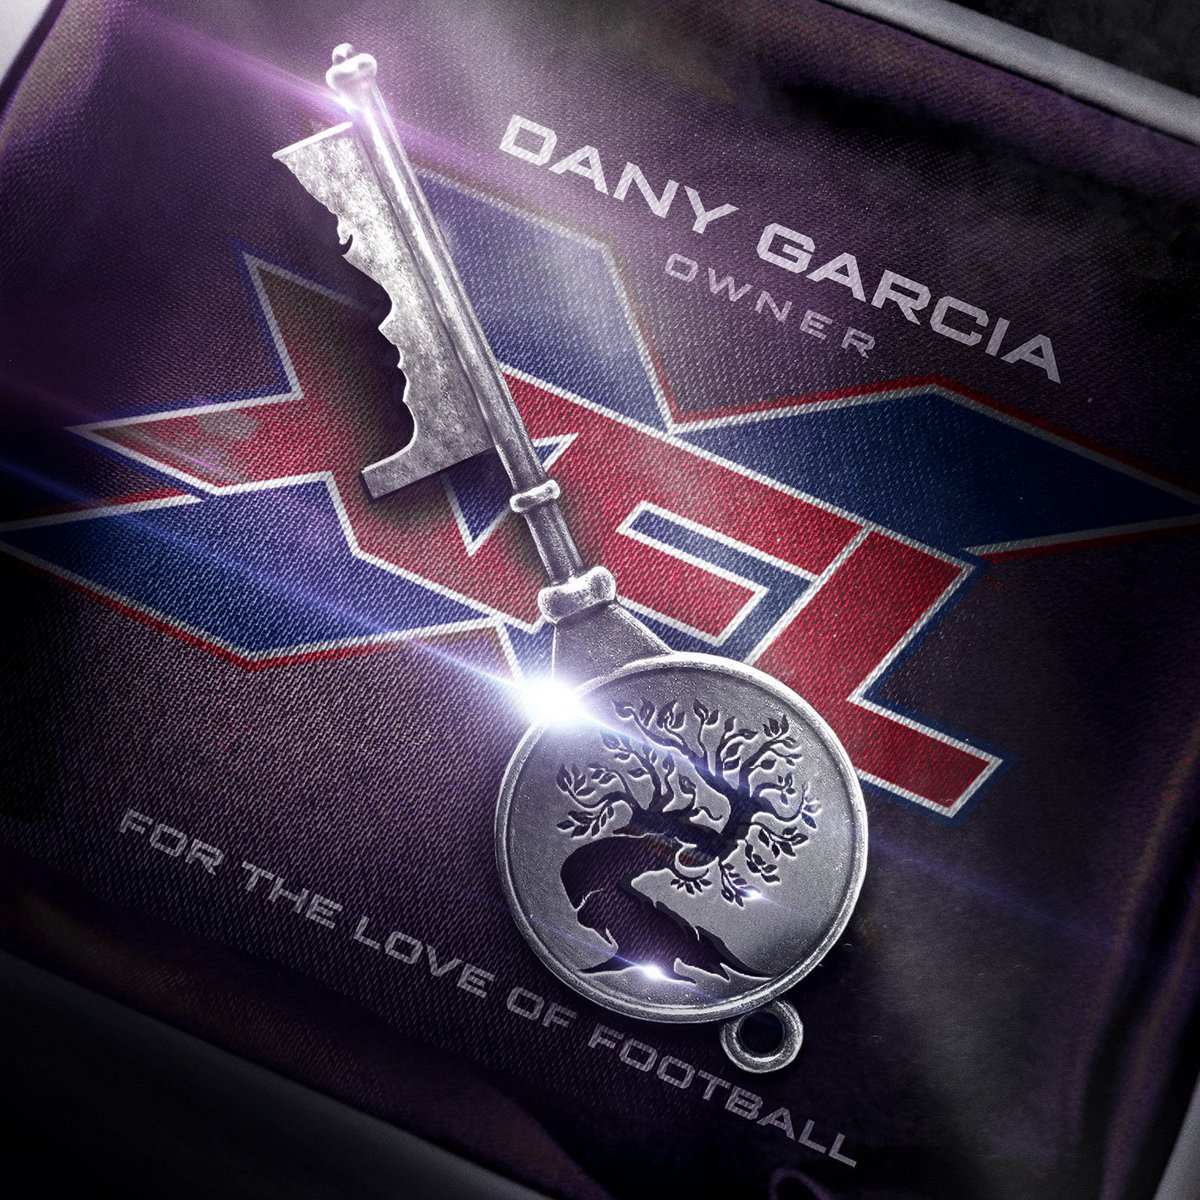 The @xfl2020 officially joins @GarciaCompanies portfolio today, making @DanyGarciaCo the first woman to own an American major professional sports league.